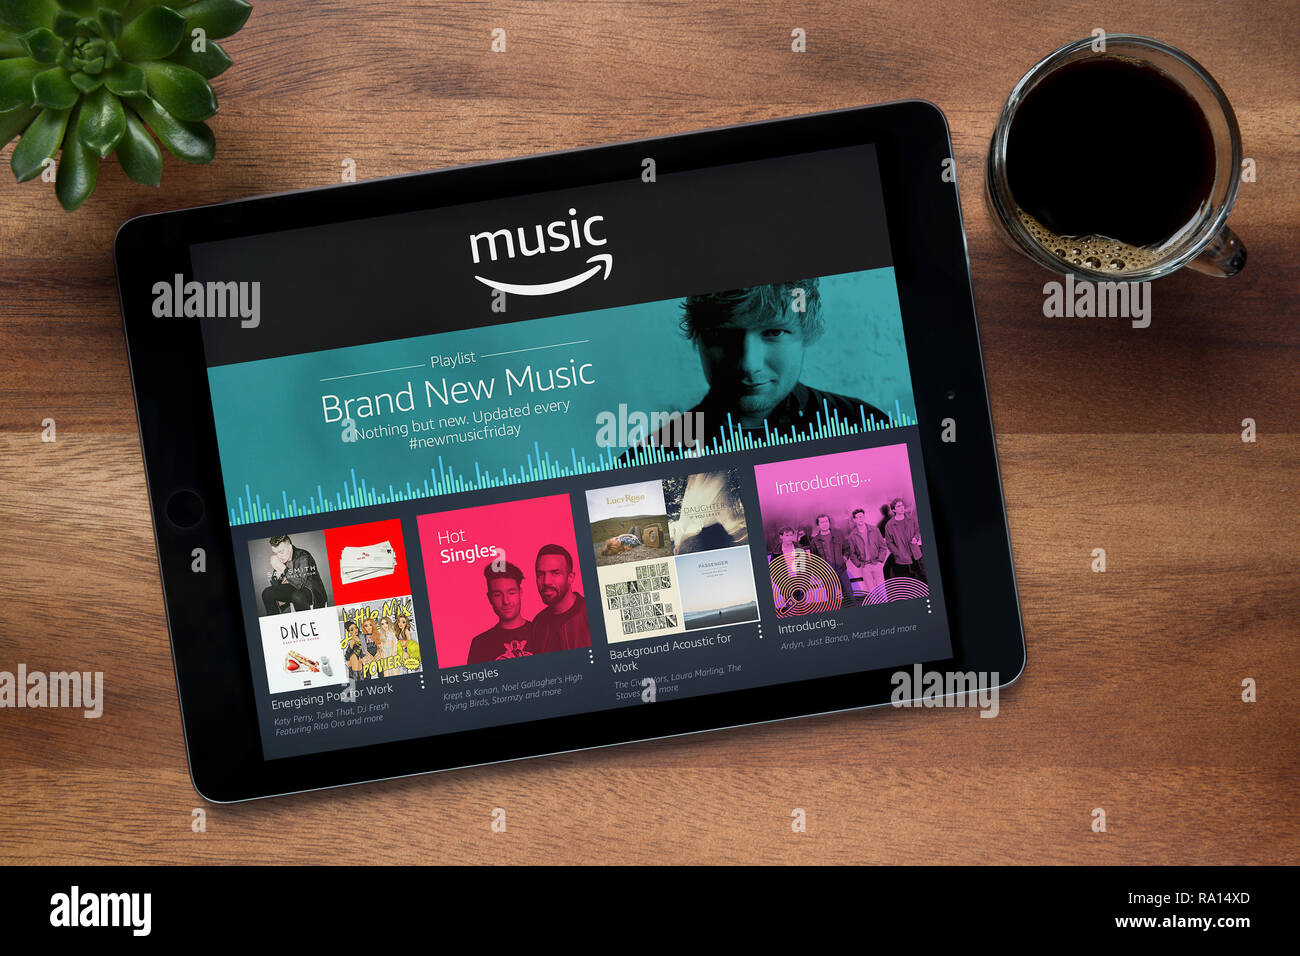 Amazon Music Logo Stock Photos & Amazon Music Logo Stock